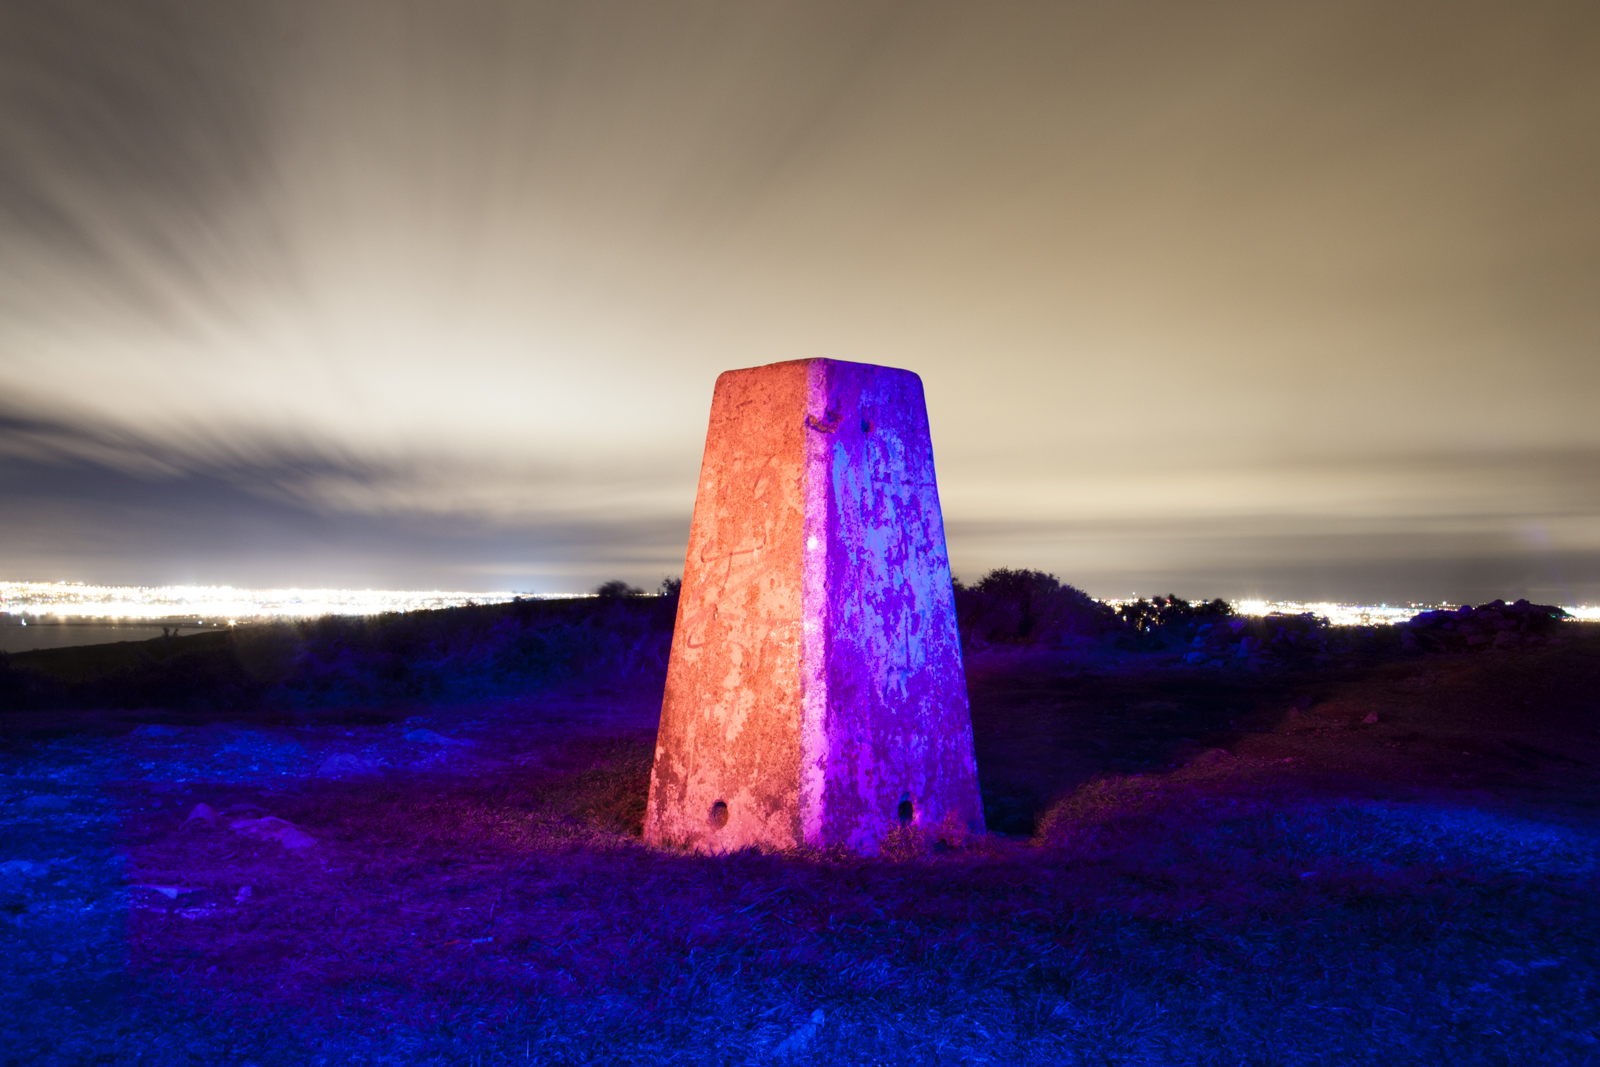 Karl Leonard, Chroma by night #1: Ordnance Survey Stone